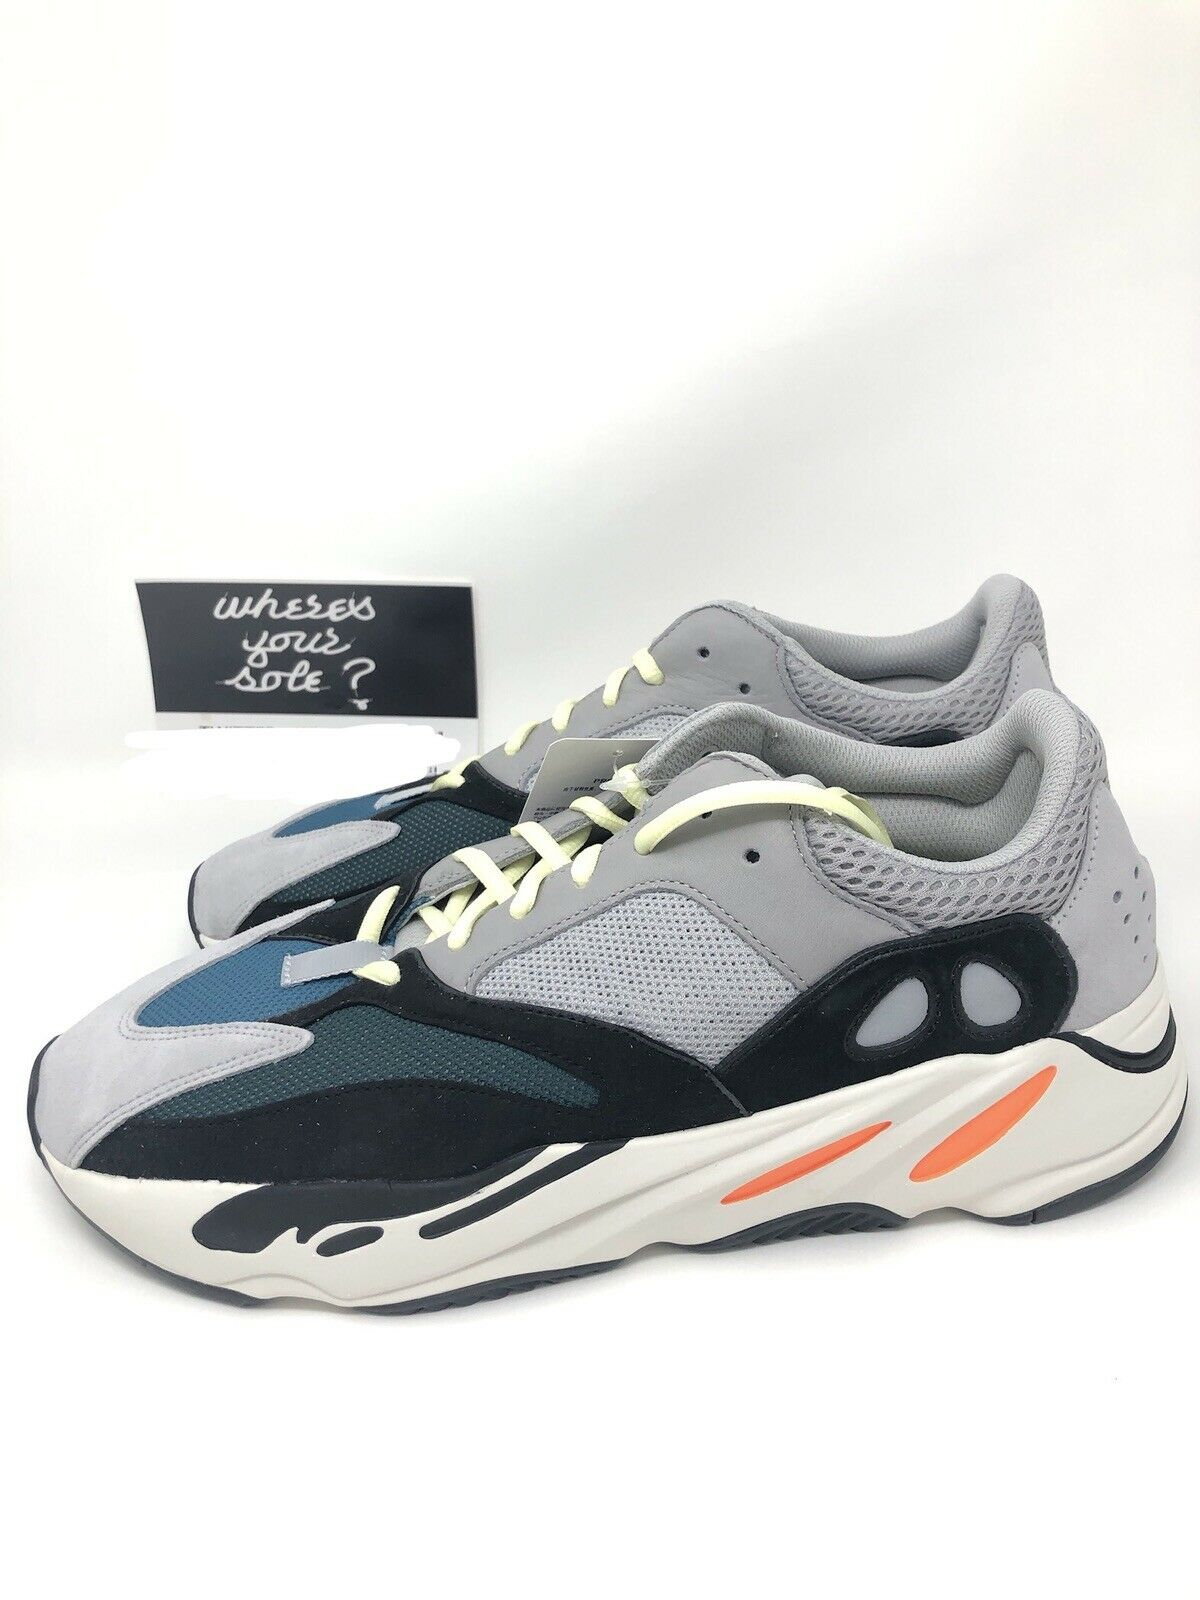 Adidas Yeezy Boost 700 Wave Runner size 12.5 New DS Solid Grey B75571